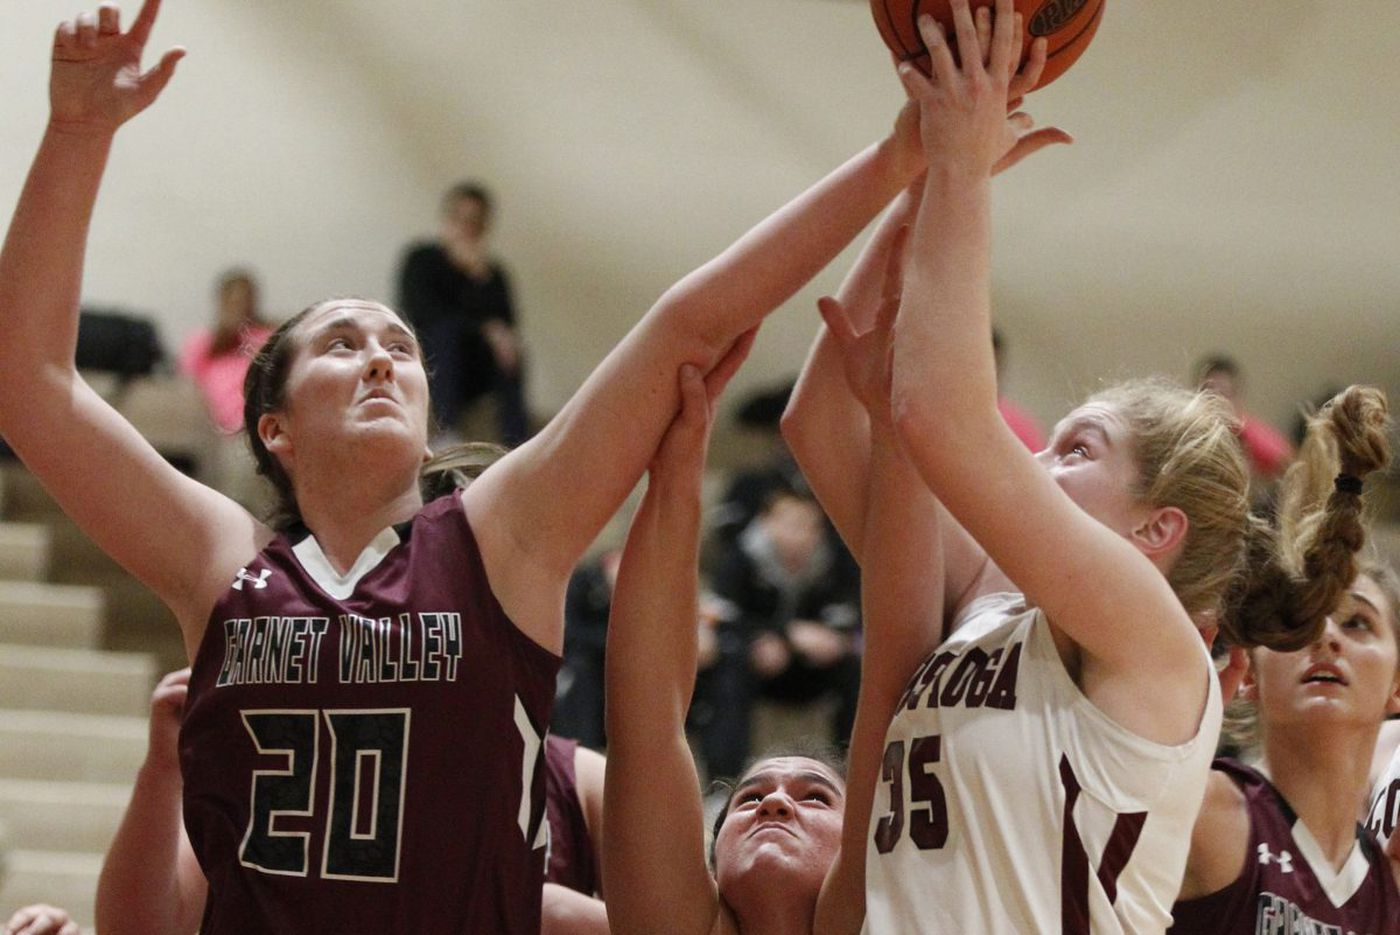 Tuesday's Pa. roundup: Emily McAteer surpasses 1,000 career points in Garnet Valley's win over Harriton